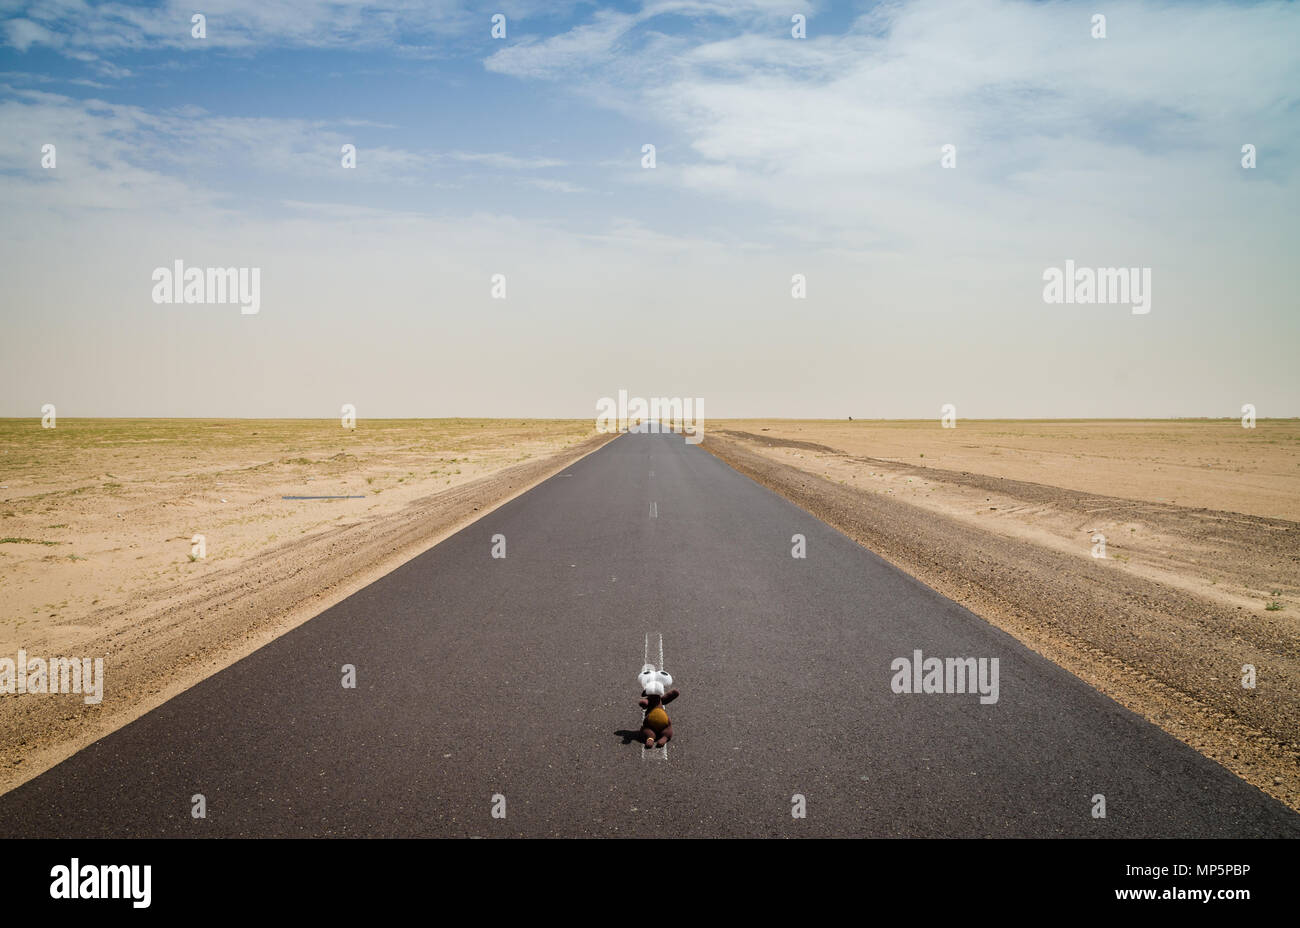 Cute soft toy sitting in middle of empty desert road with diminishing perspective, Mauritania, Africa - Stock Image